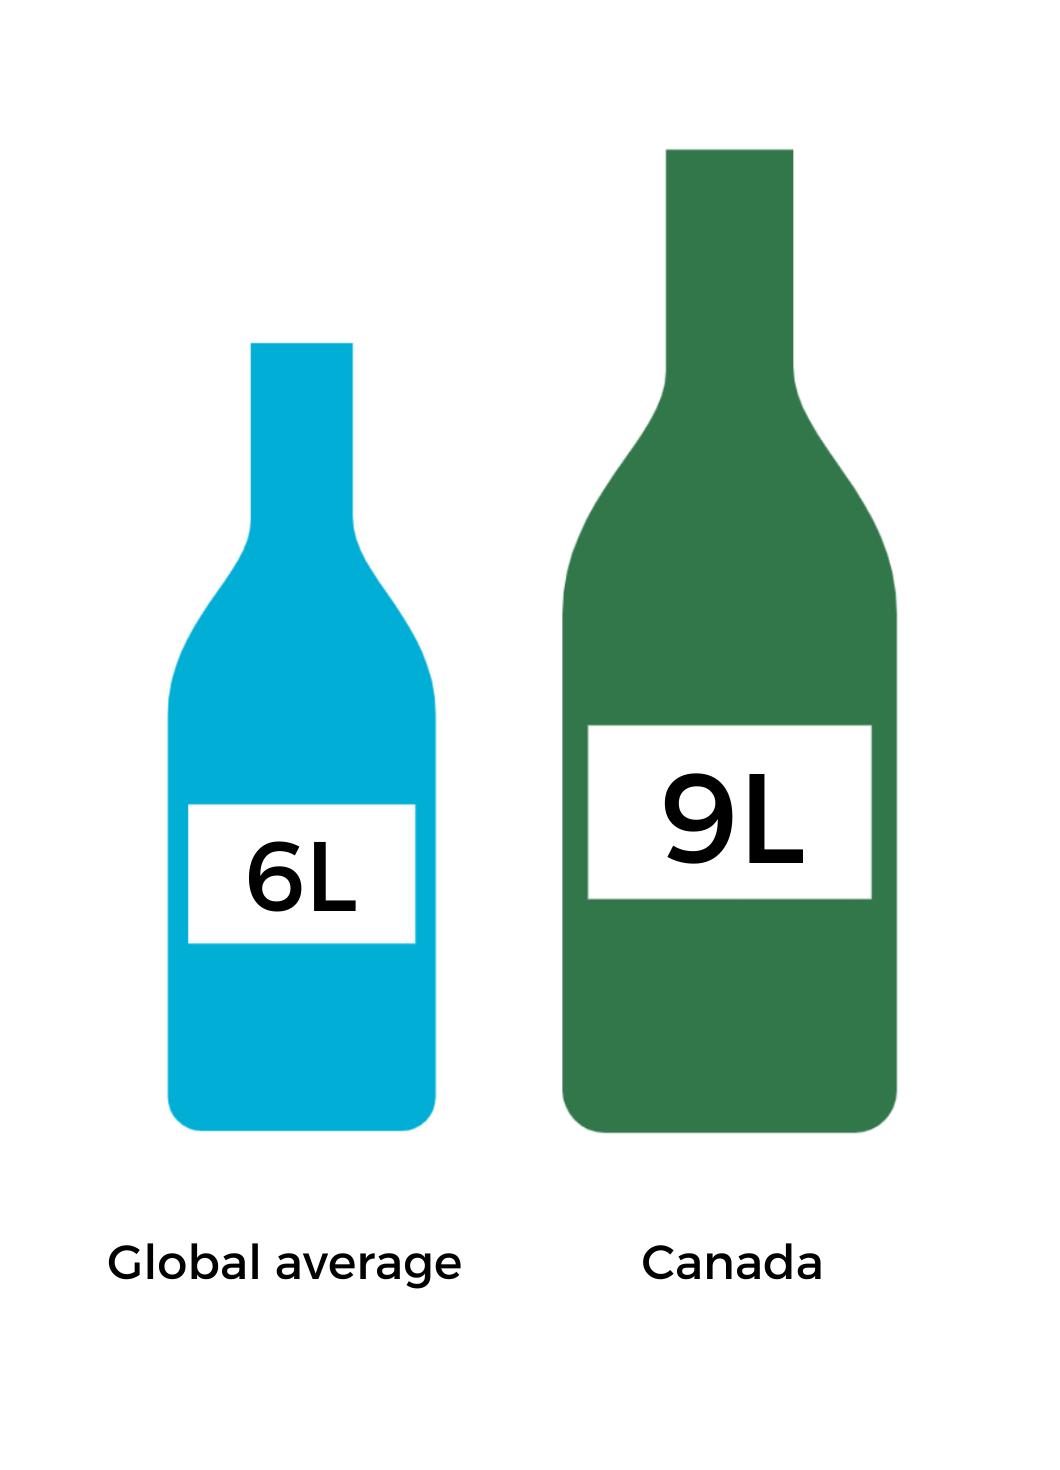 6 L per year is global average per capita and 9 L is Canadian per capita rate of alcohol consumption